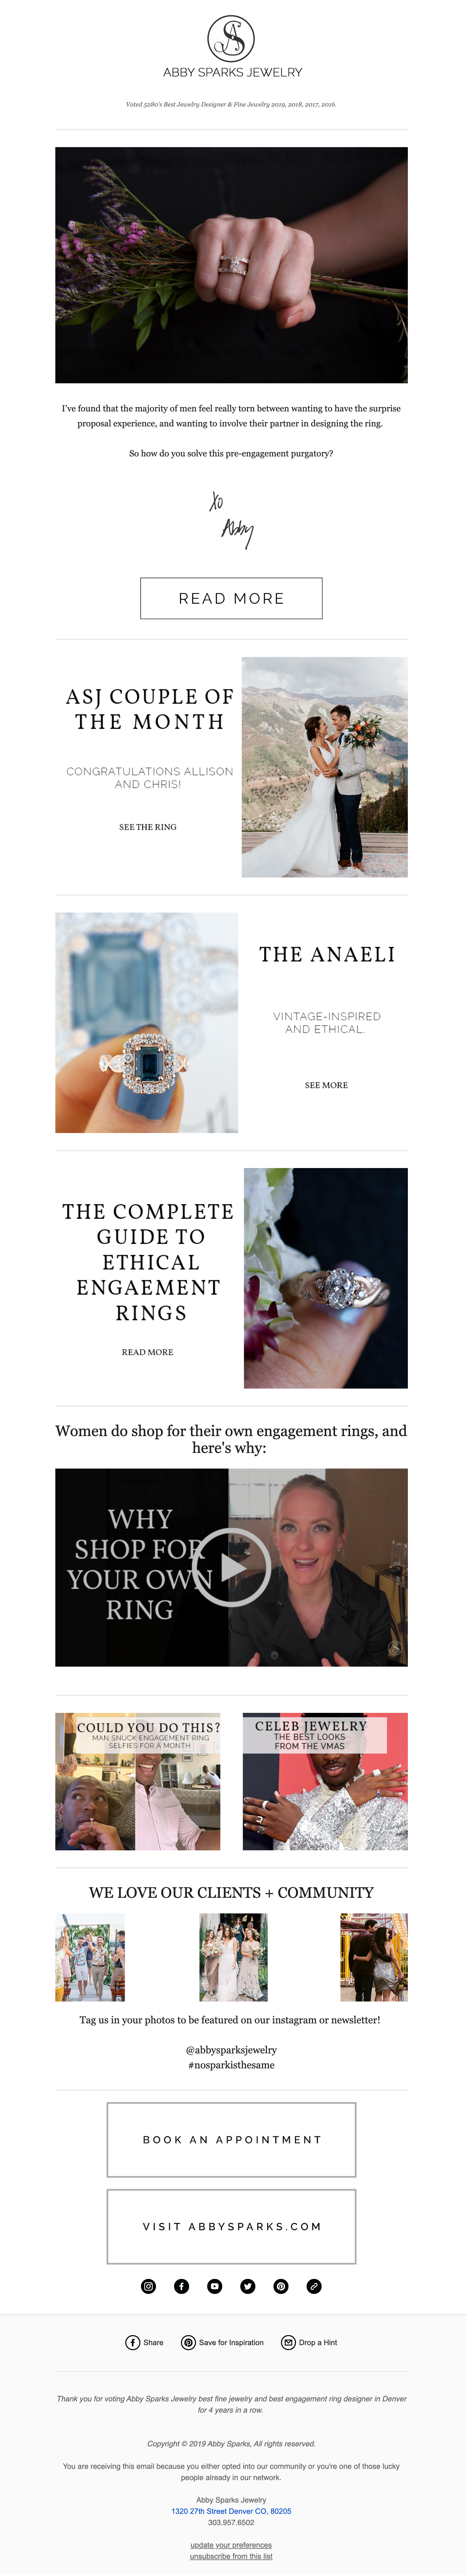 Abby Sparks Jewelry email